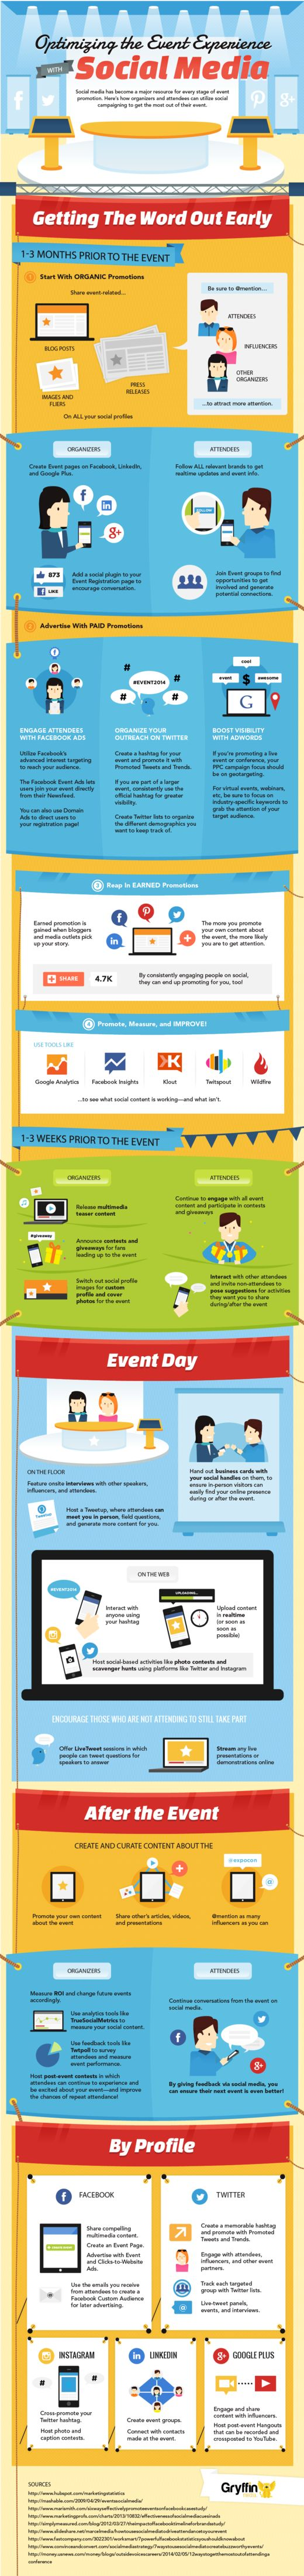 How to Optimize Events with Social Media [Infographic] | B2B Marketing Blog | Webbiquity